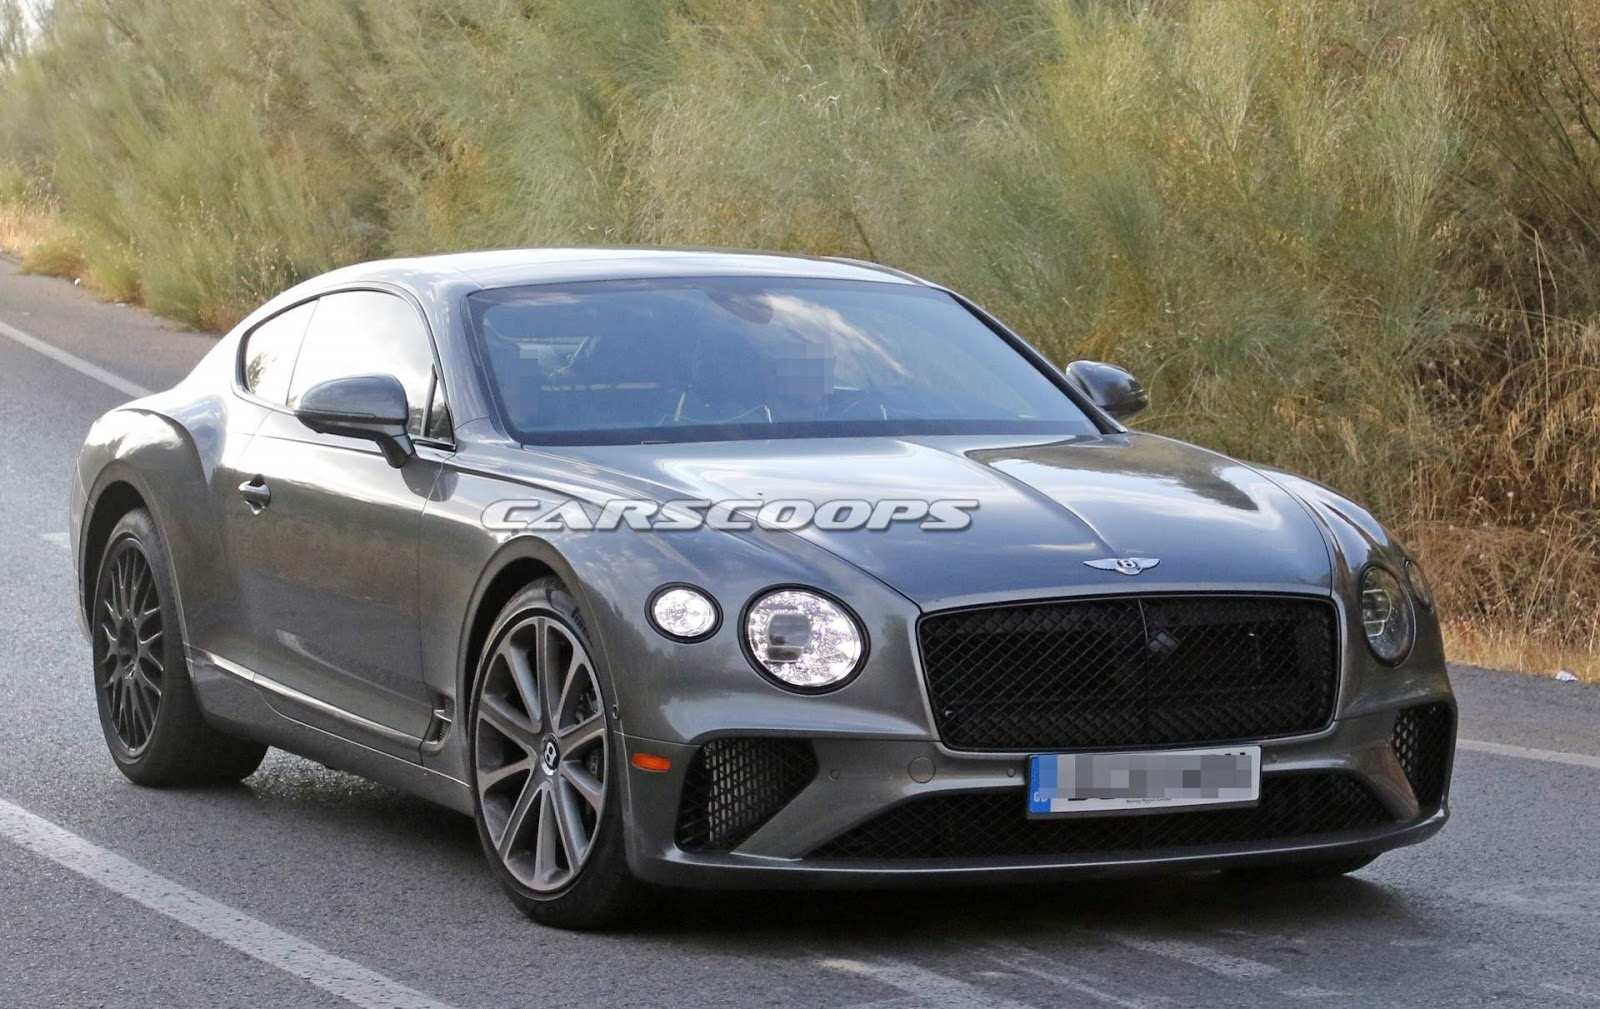 43 New 2020 Bentley Continental GT Model